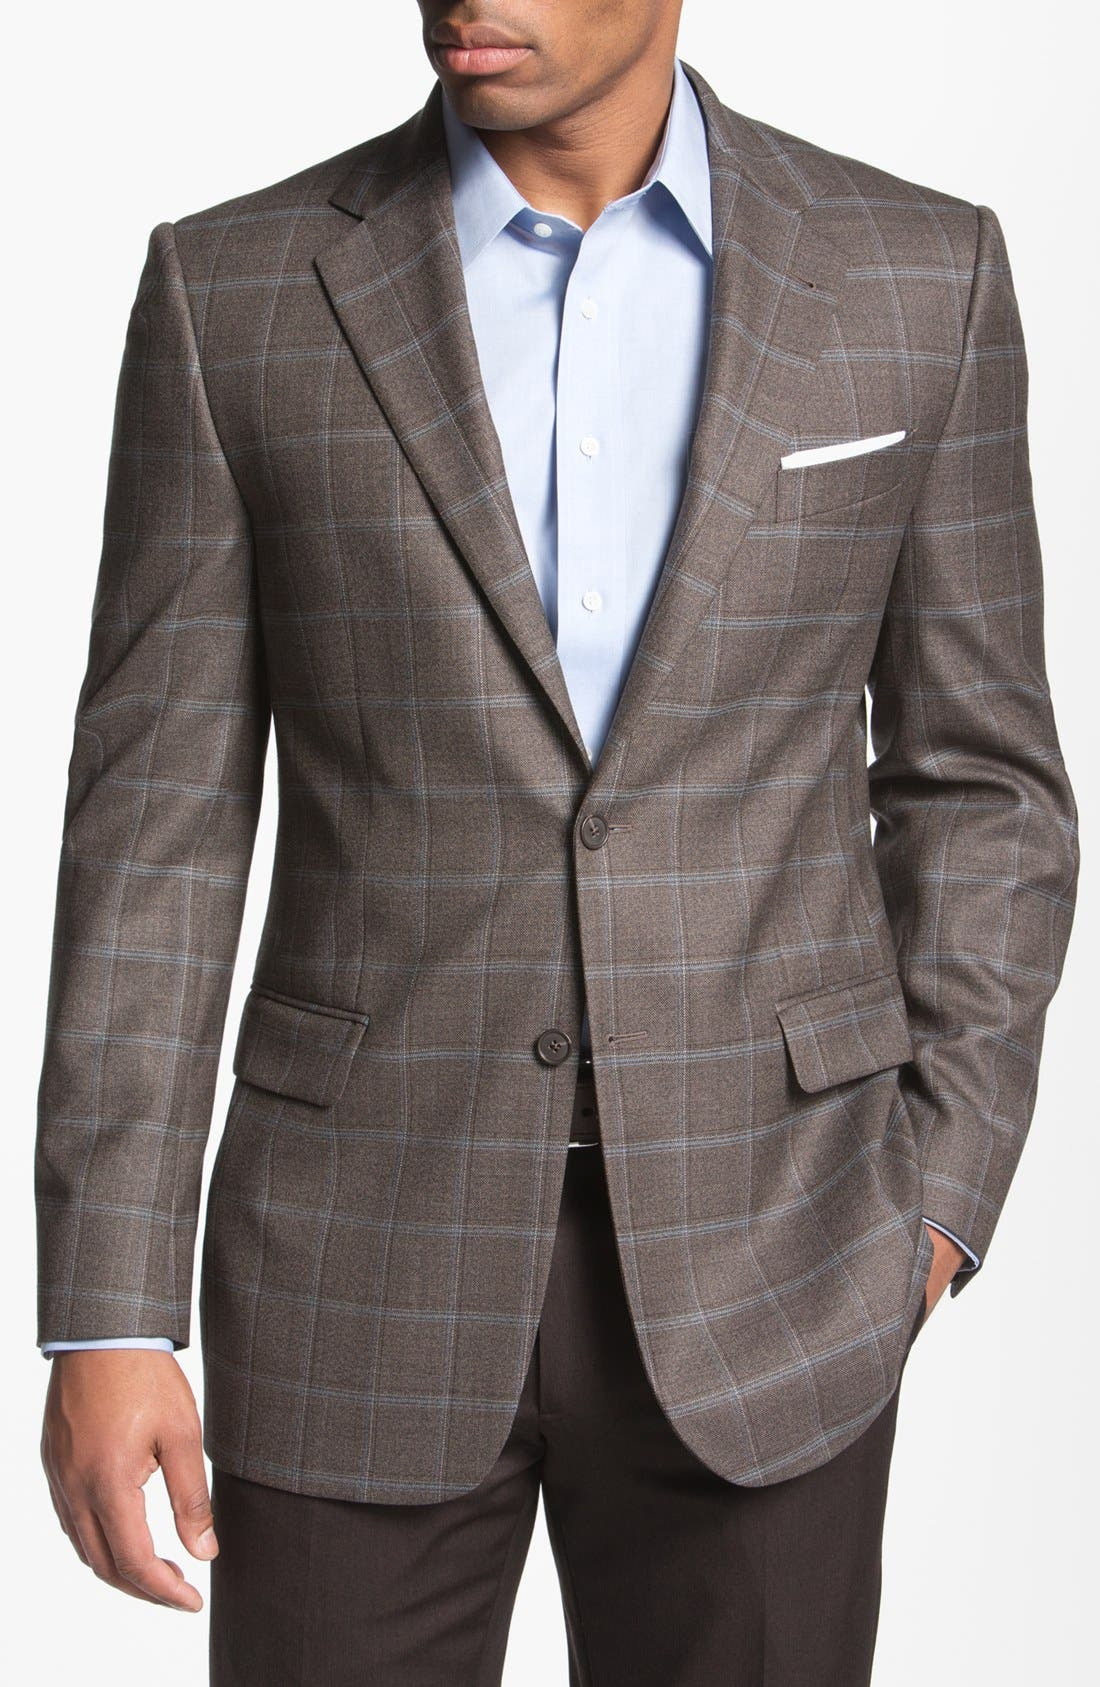 Main Image - Joseph Abboud 'Signature Silver' Plaid Wool Sportcoat (Online Only)